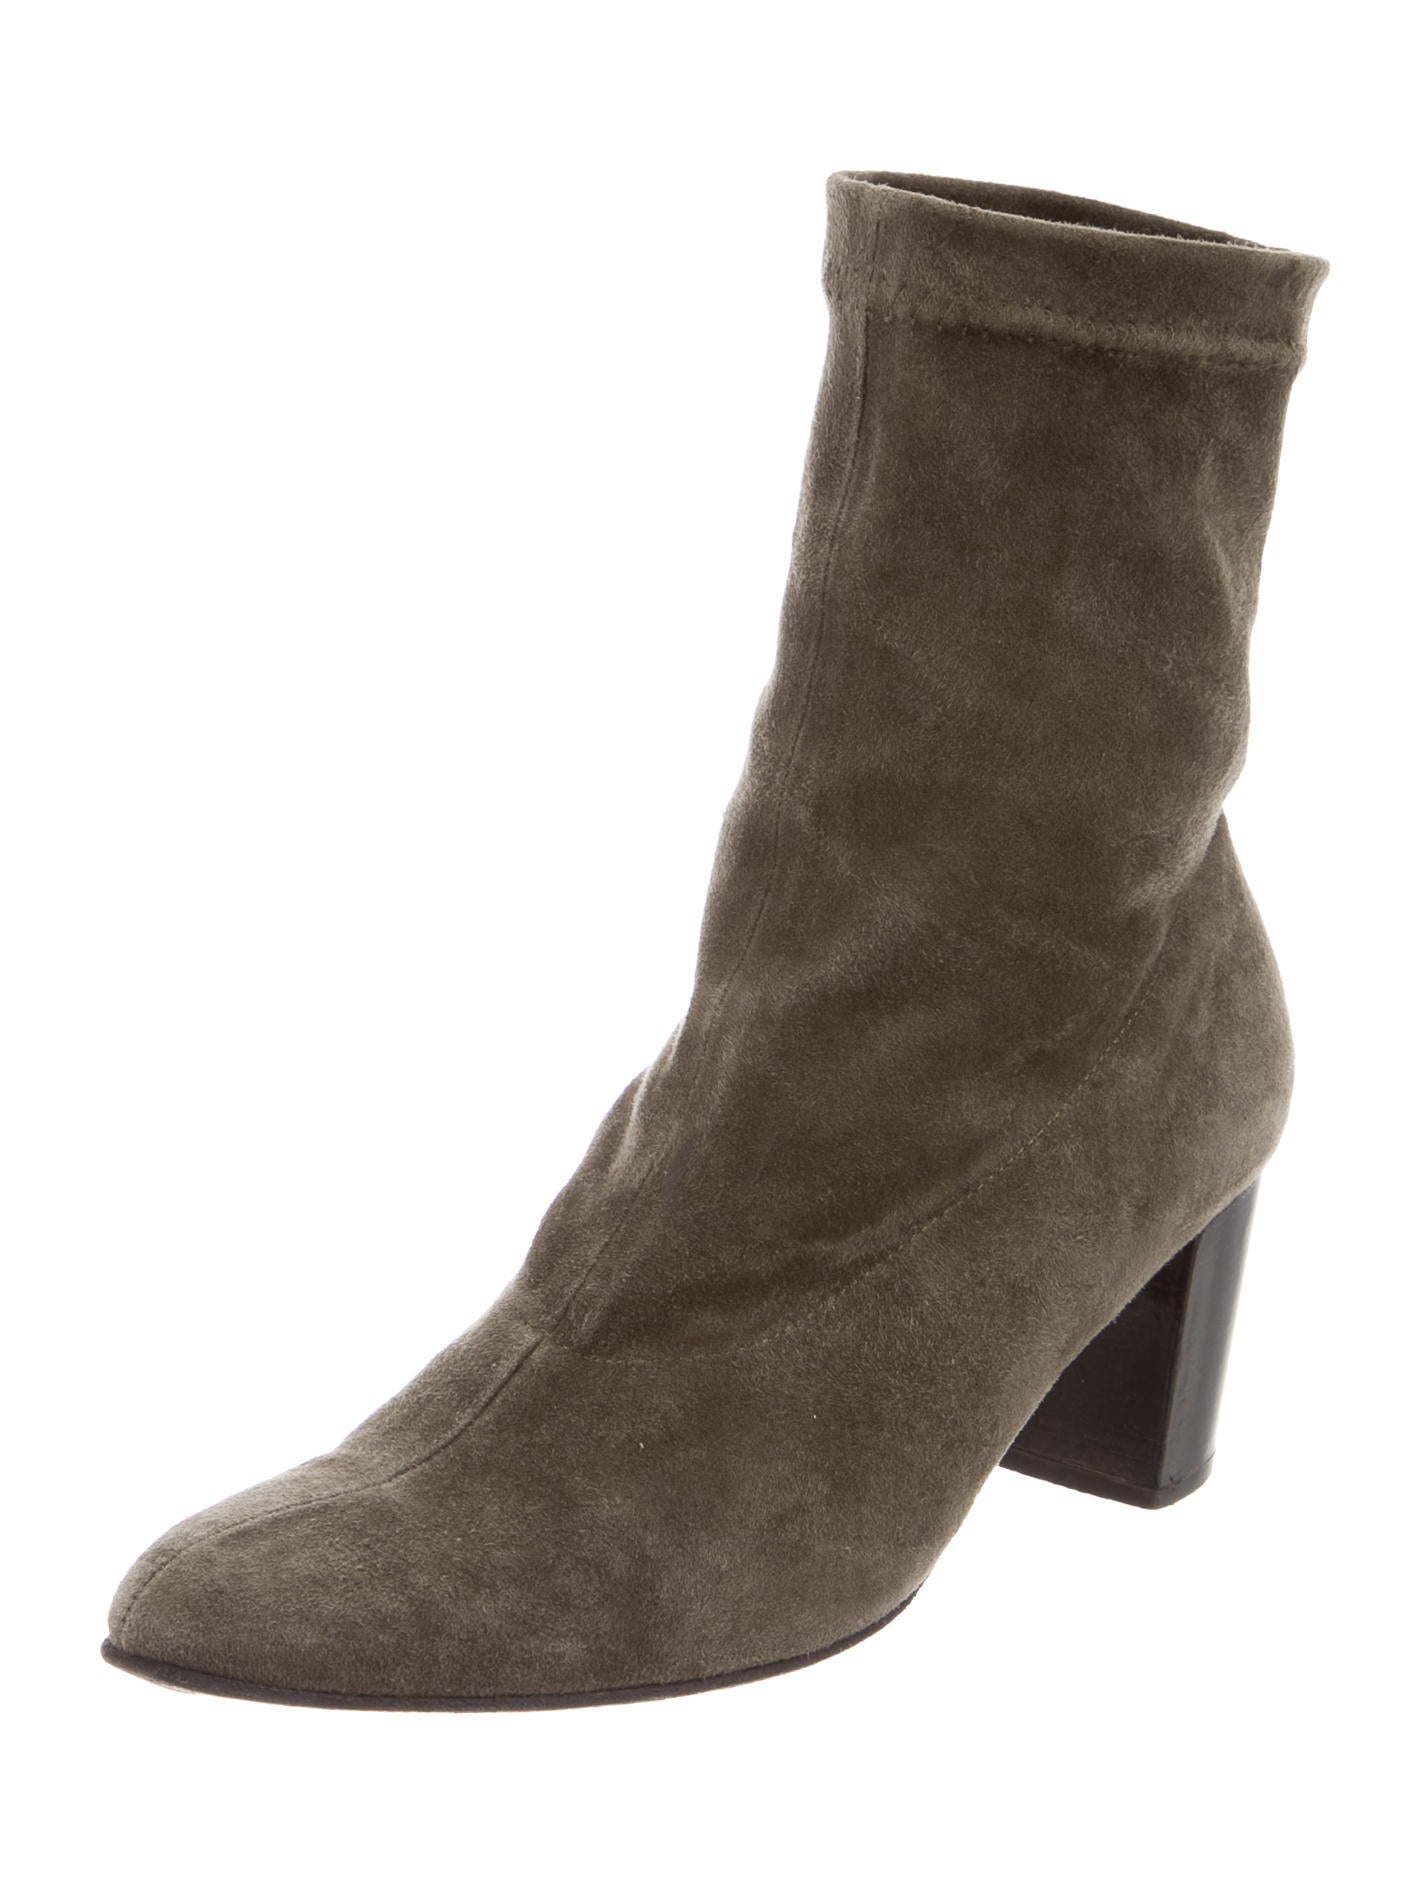 robert clergerie suede ankle boots shoes rog25004